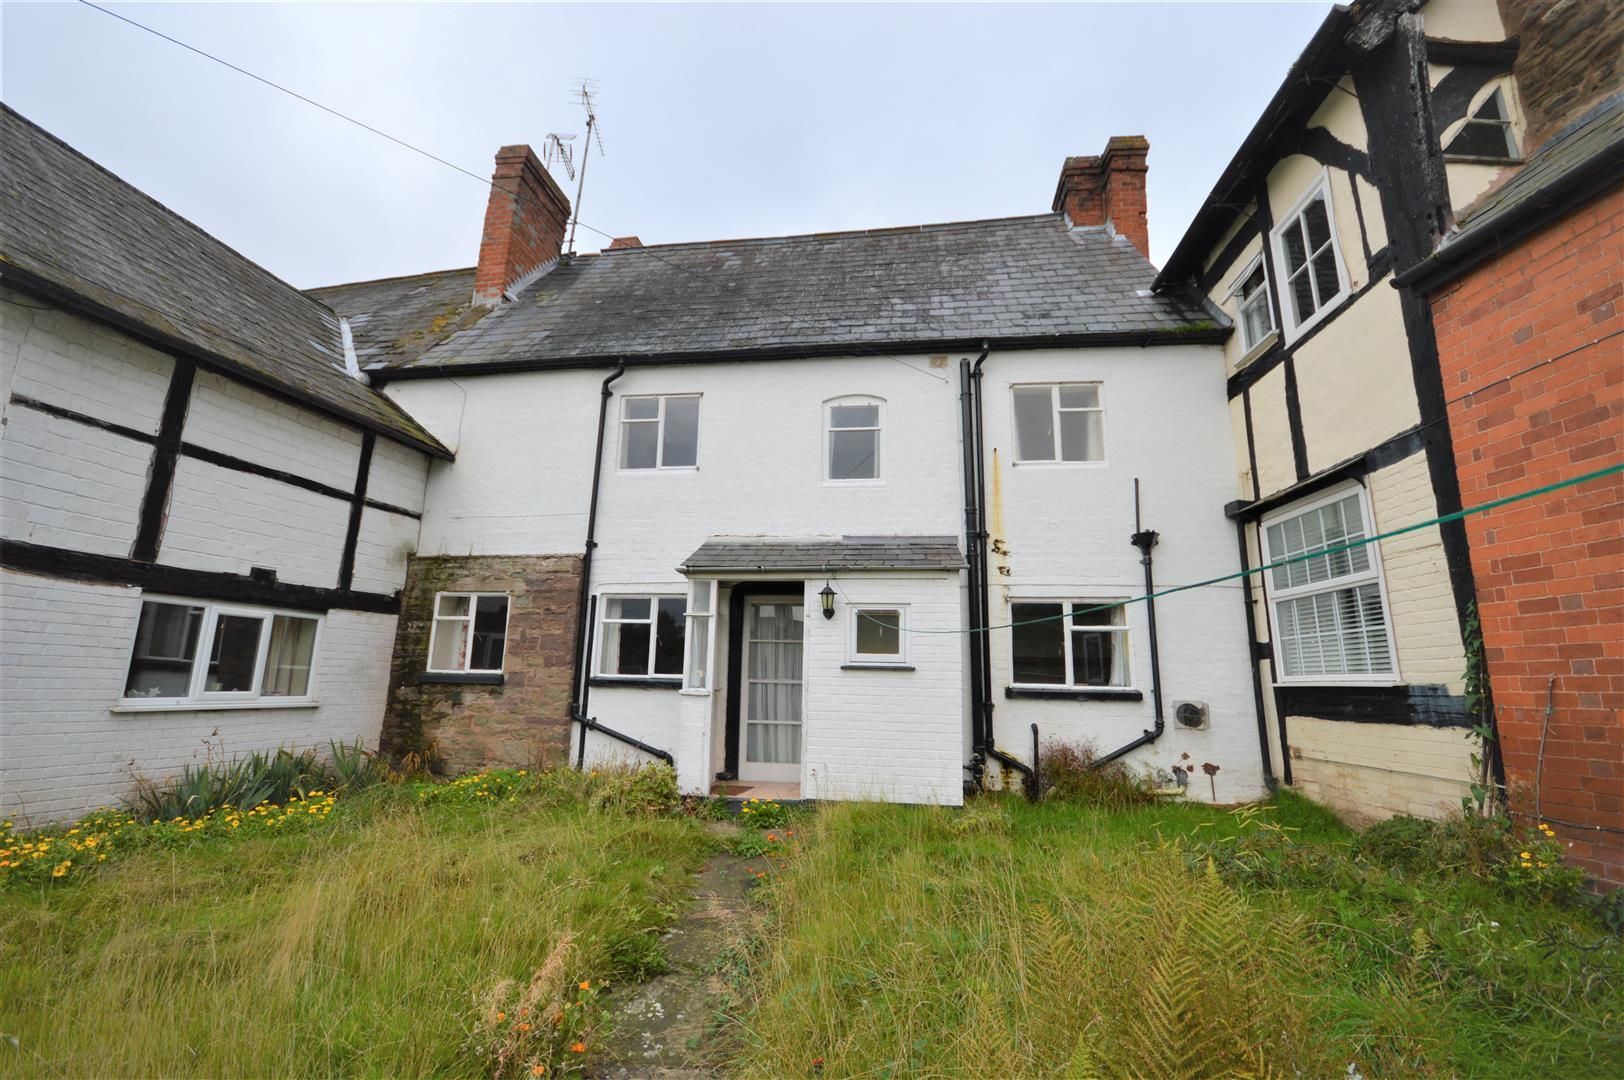 3 bed cottage for sale in Weobley  - Property Image 17